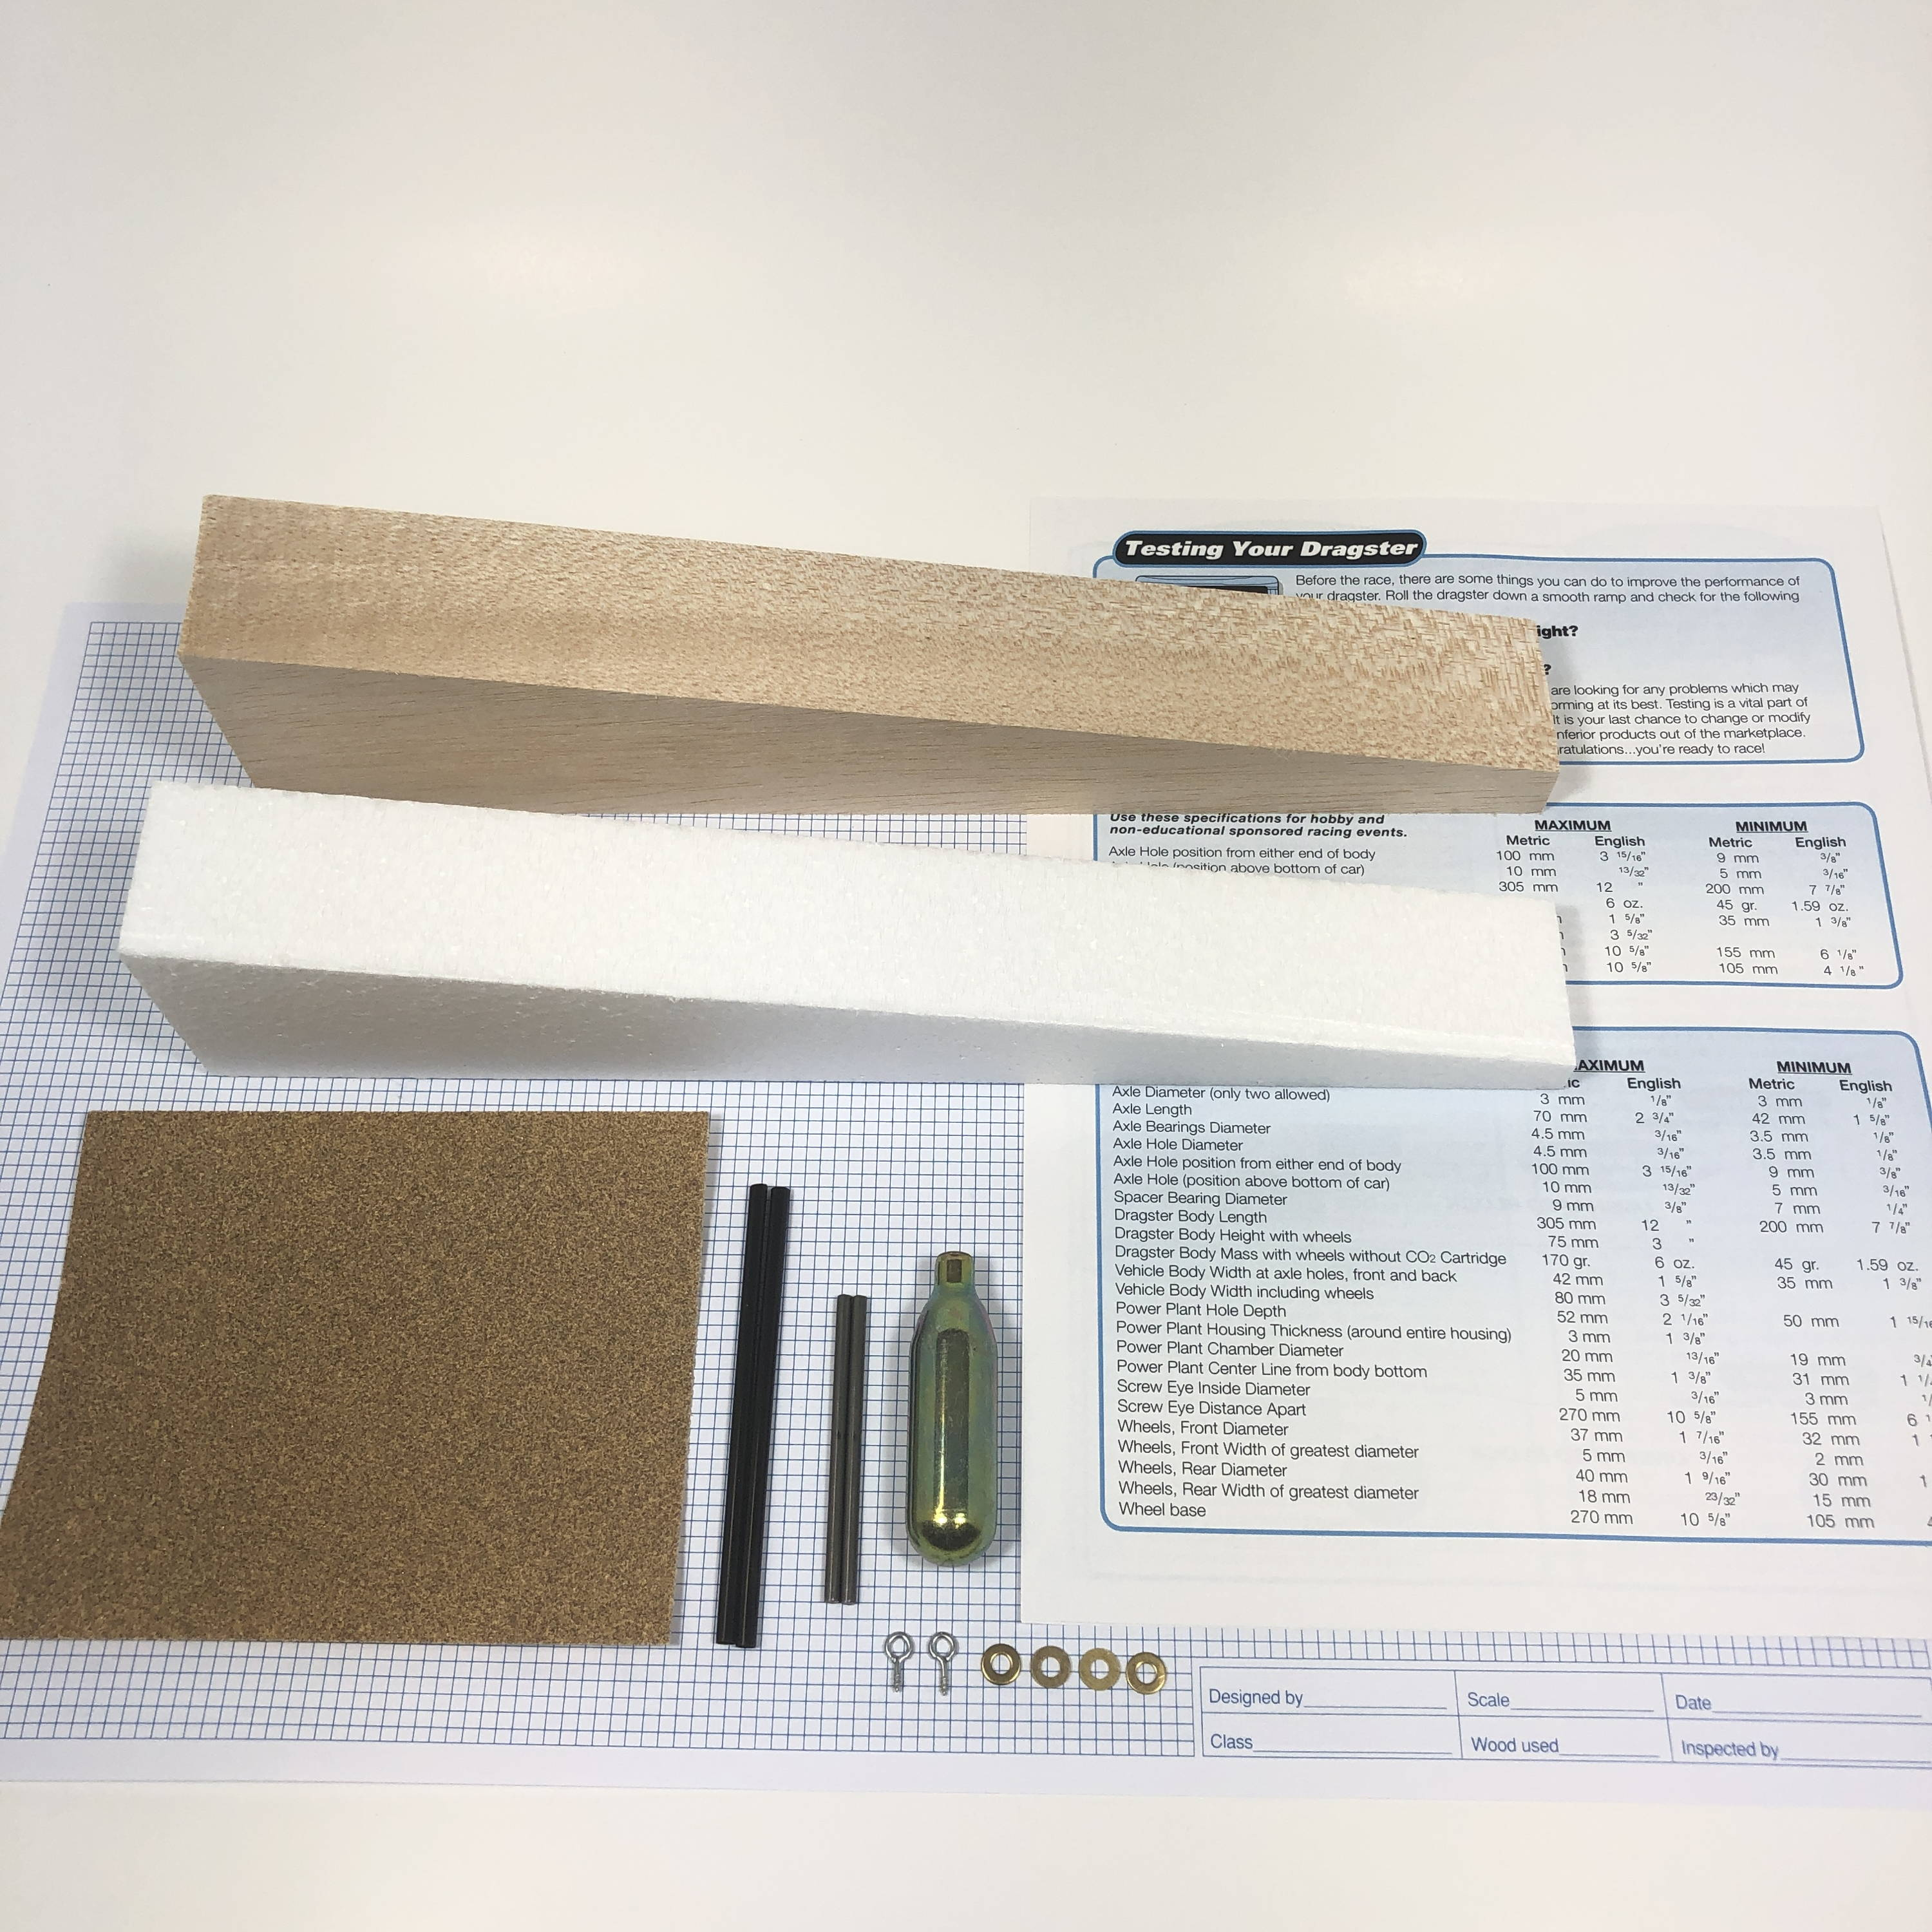 co2-dragster-Basswood-kit-school-project